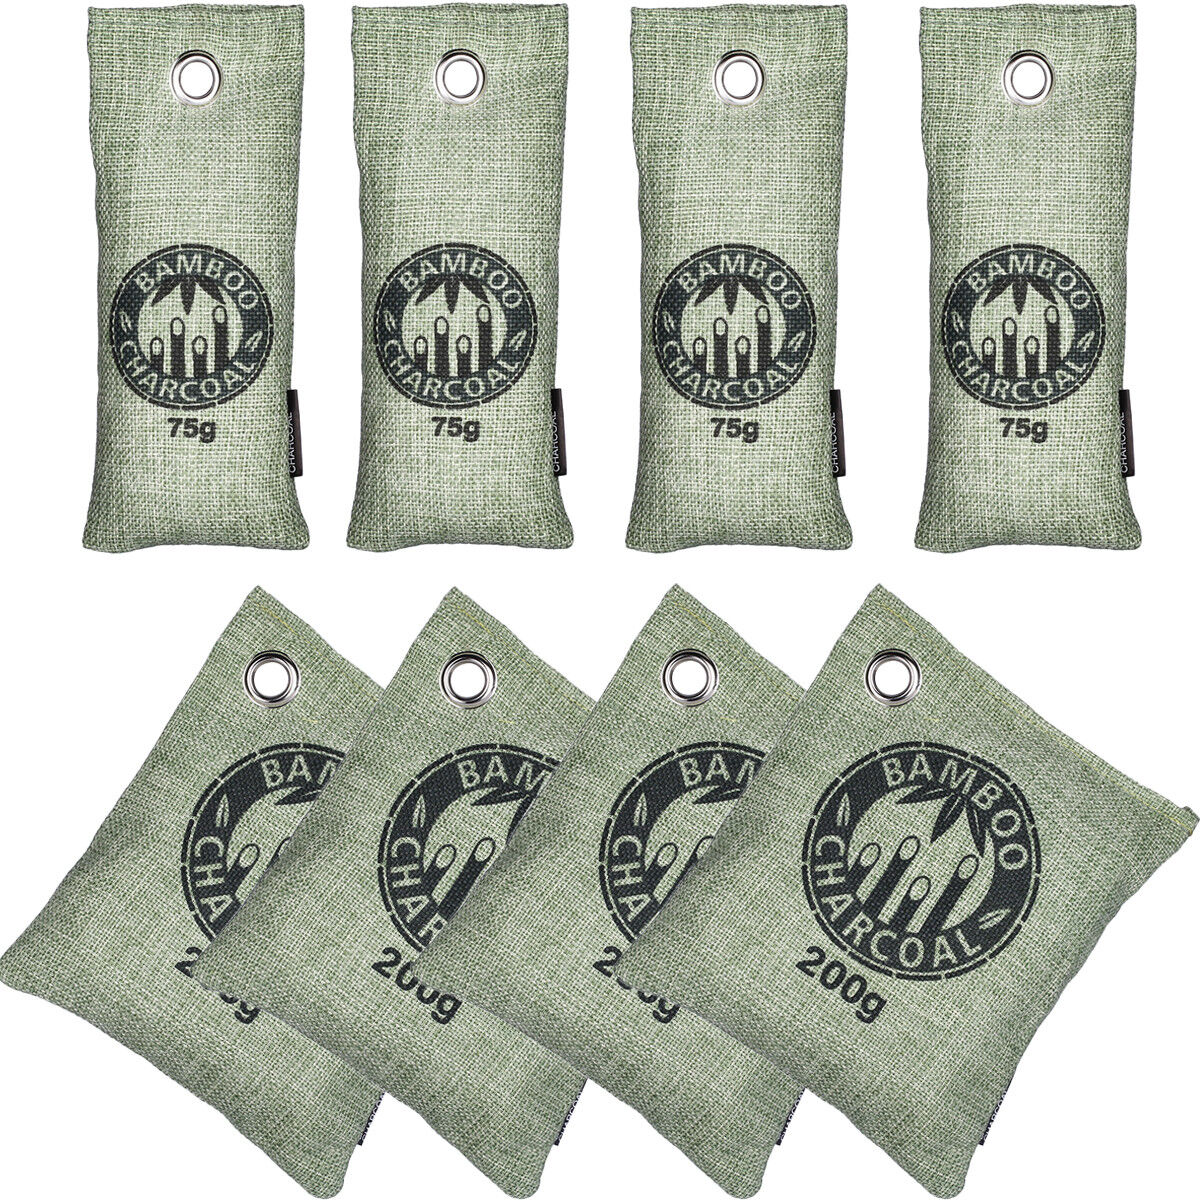 8 x Natural Bamboo Charcoal Air Purifying Bags Home Car Freshener Odor Deodorant